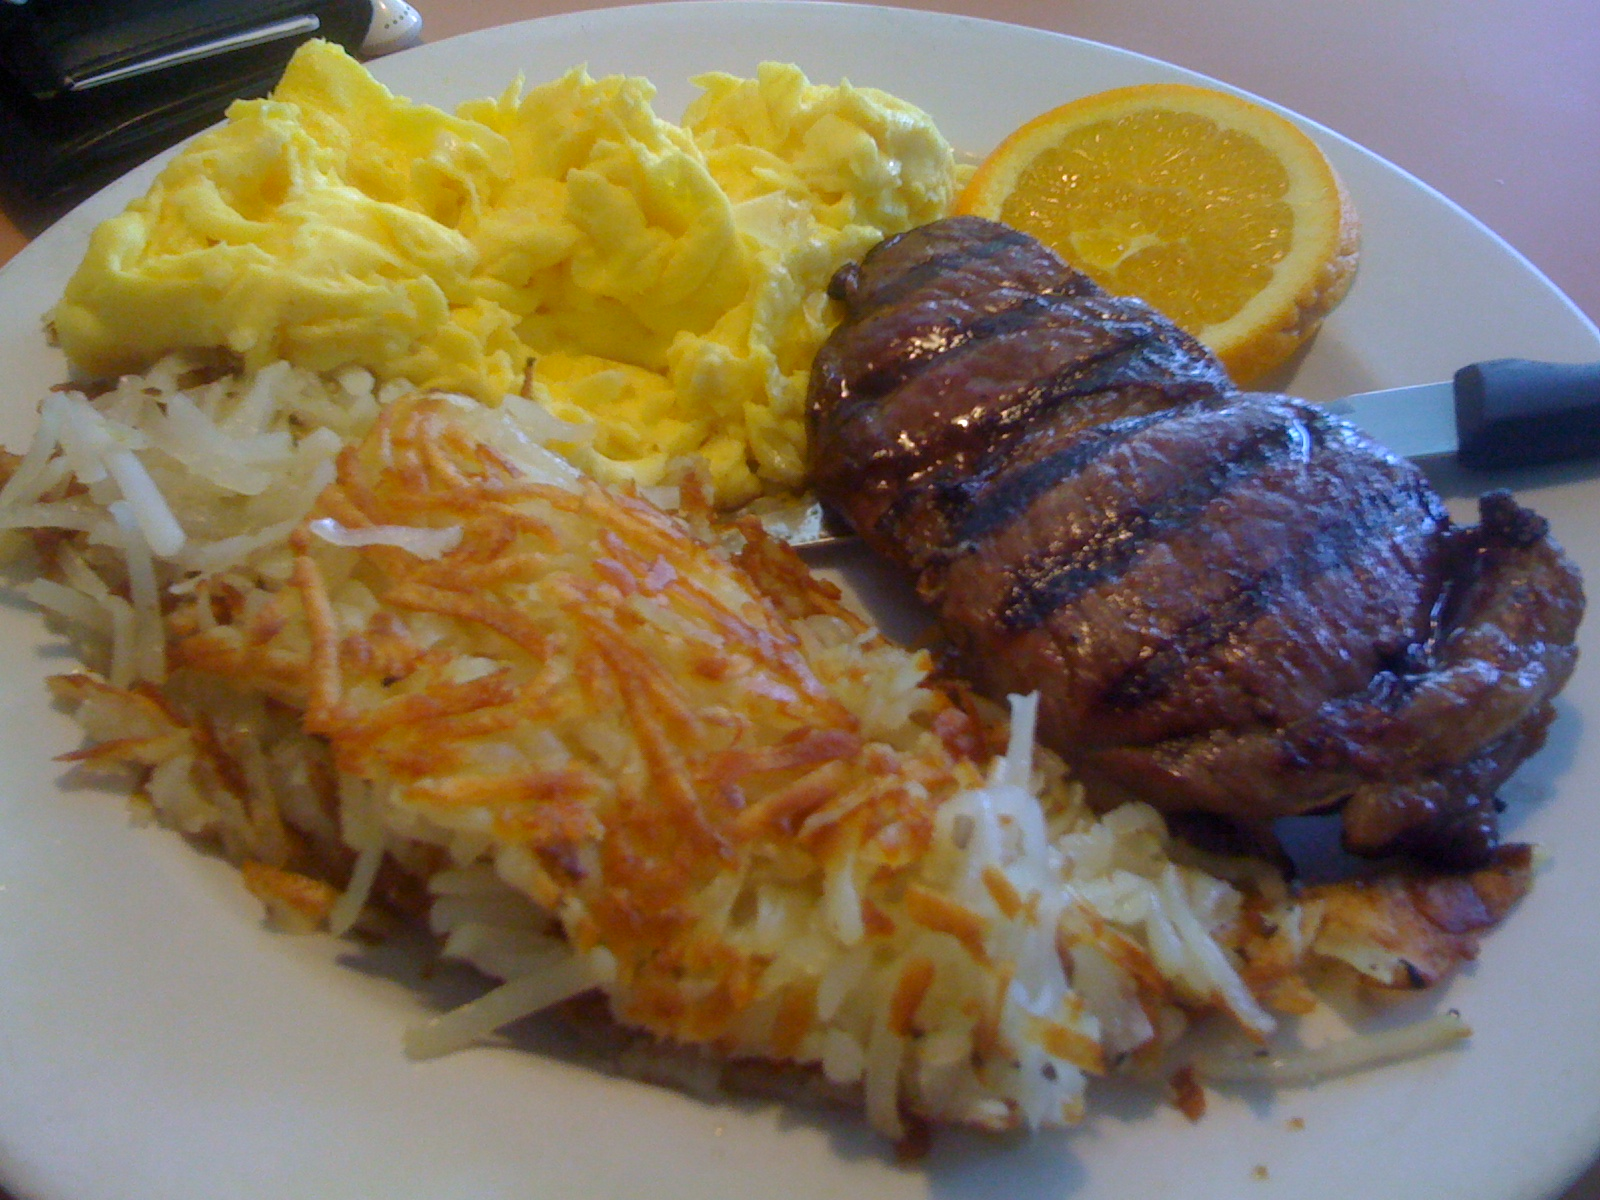 Sirloin steak, hash browns, and eggs